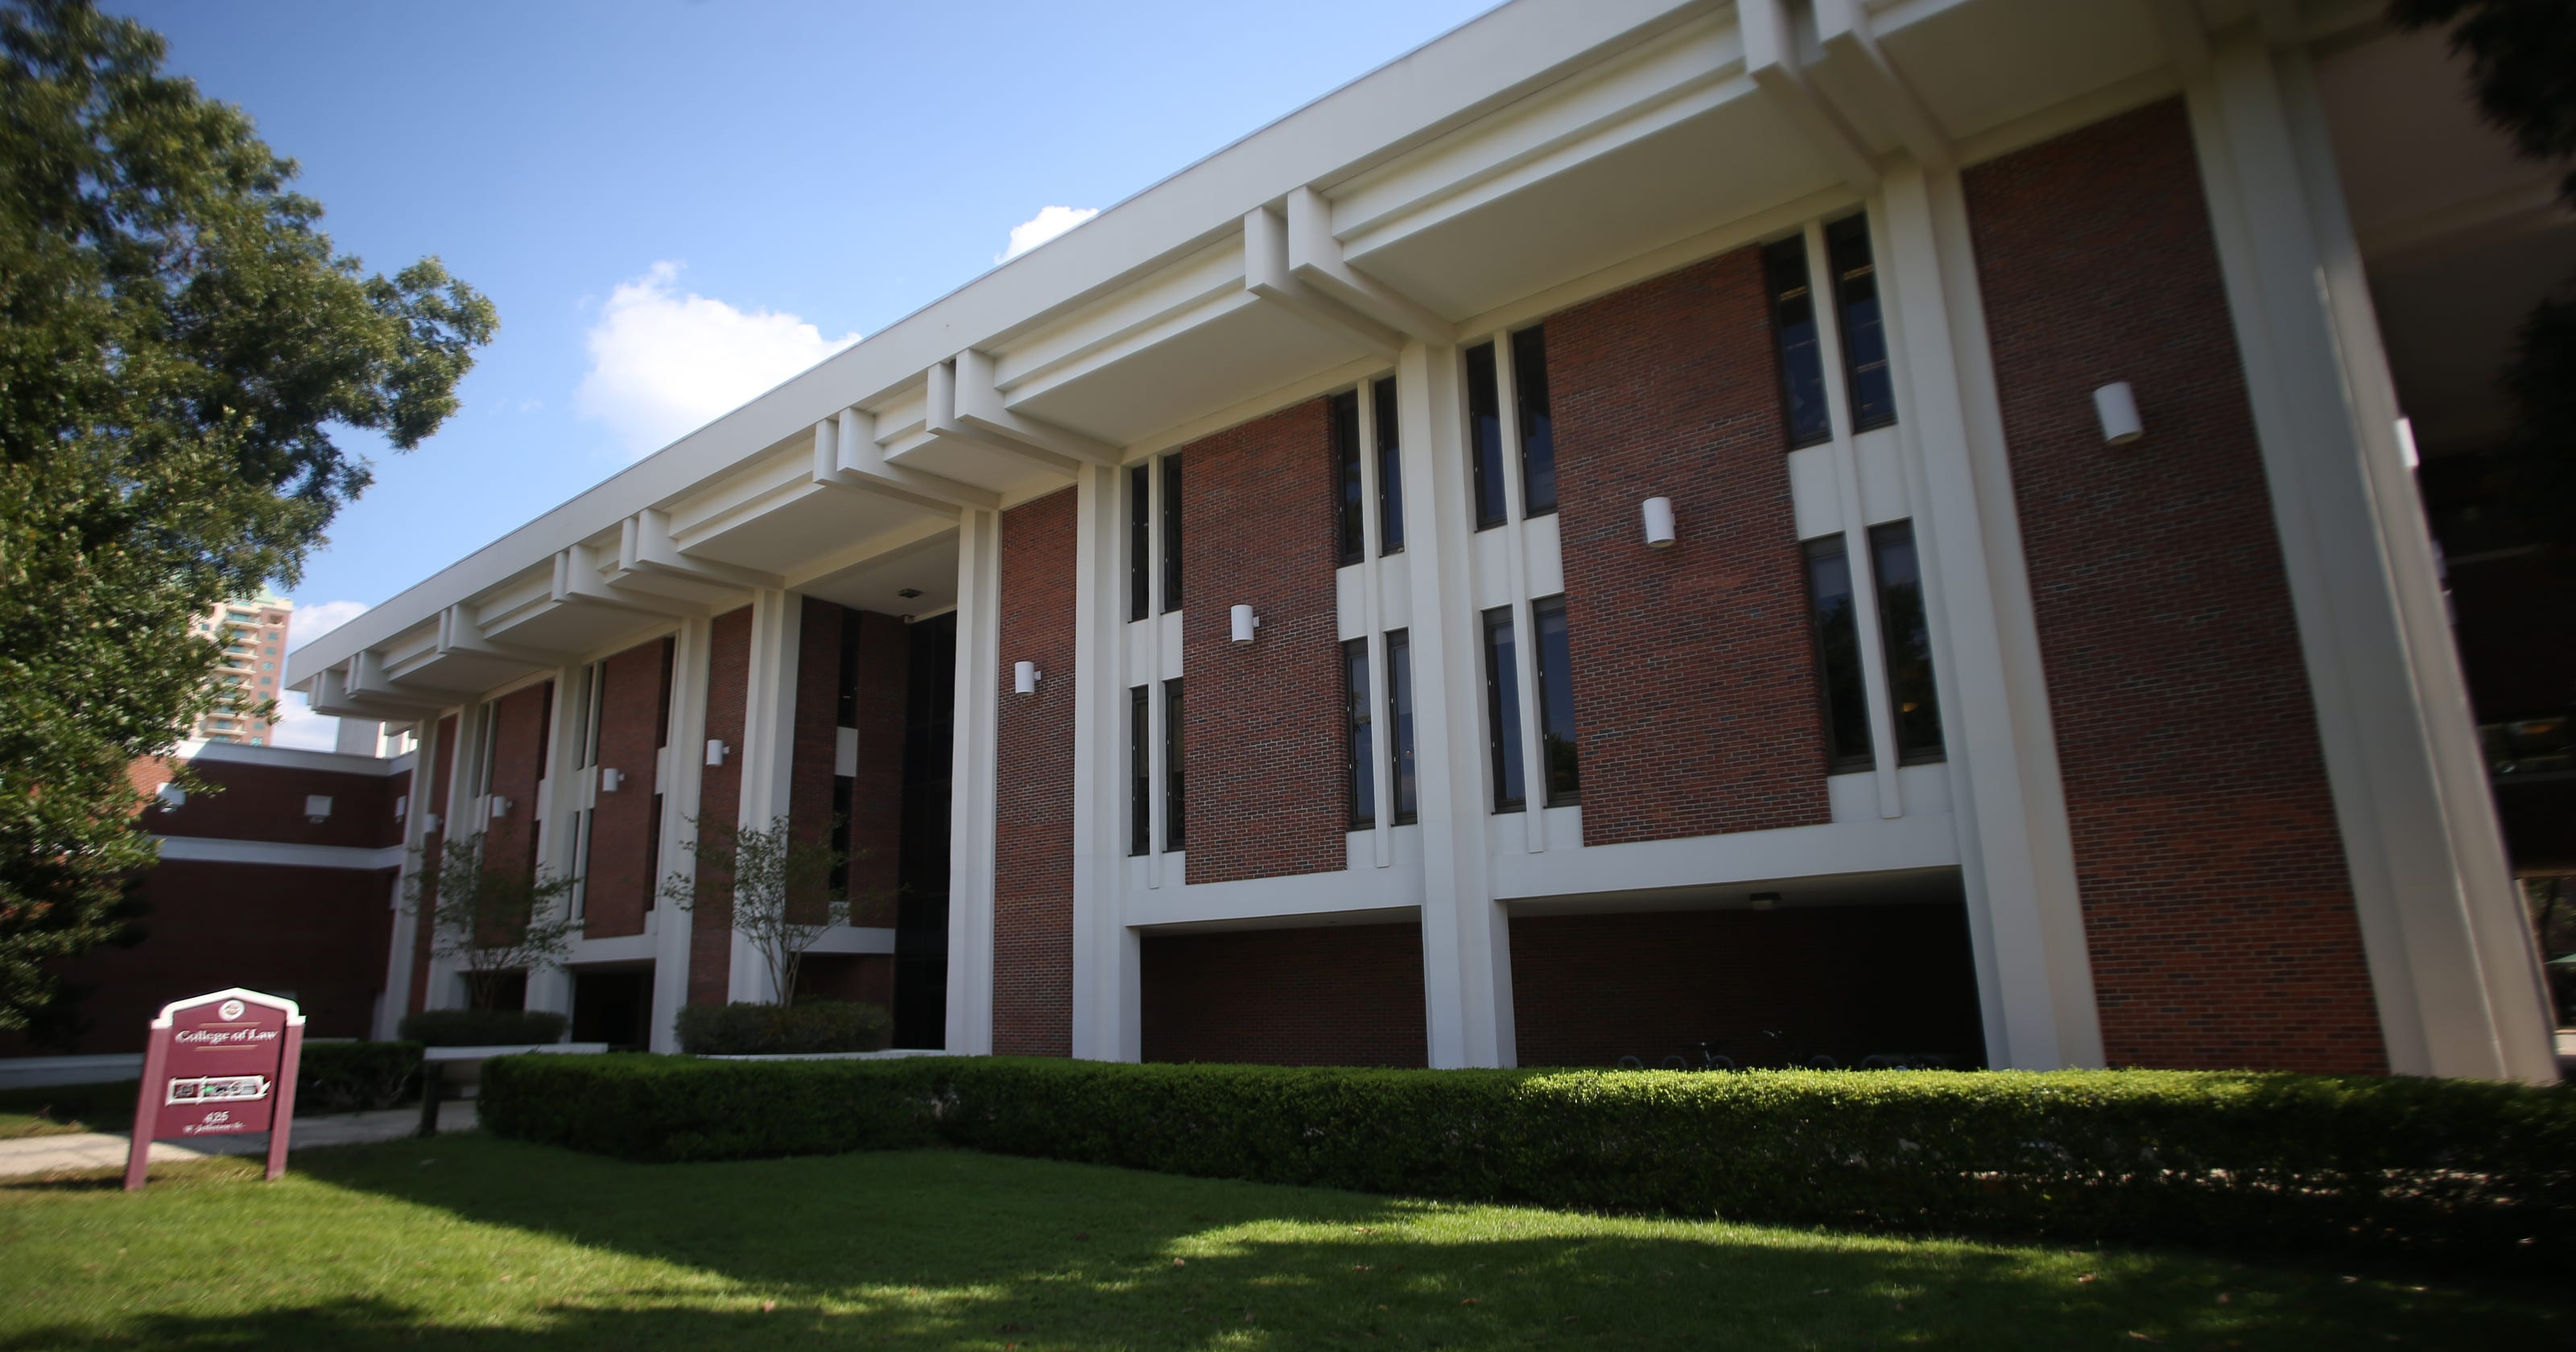 Fsu Law School >> Fsu S College Of Law Seeks Housing For Students Arriving From Puerto